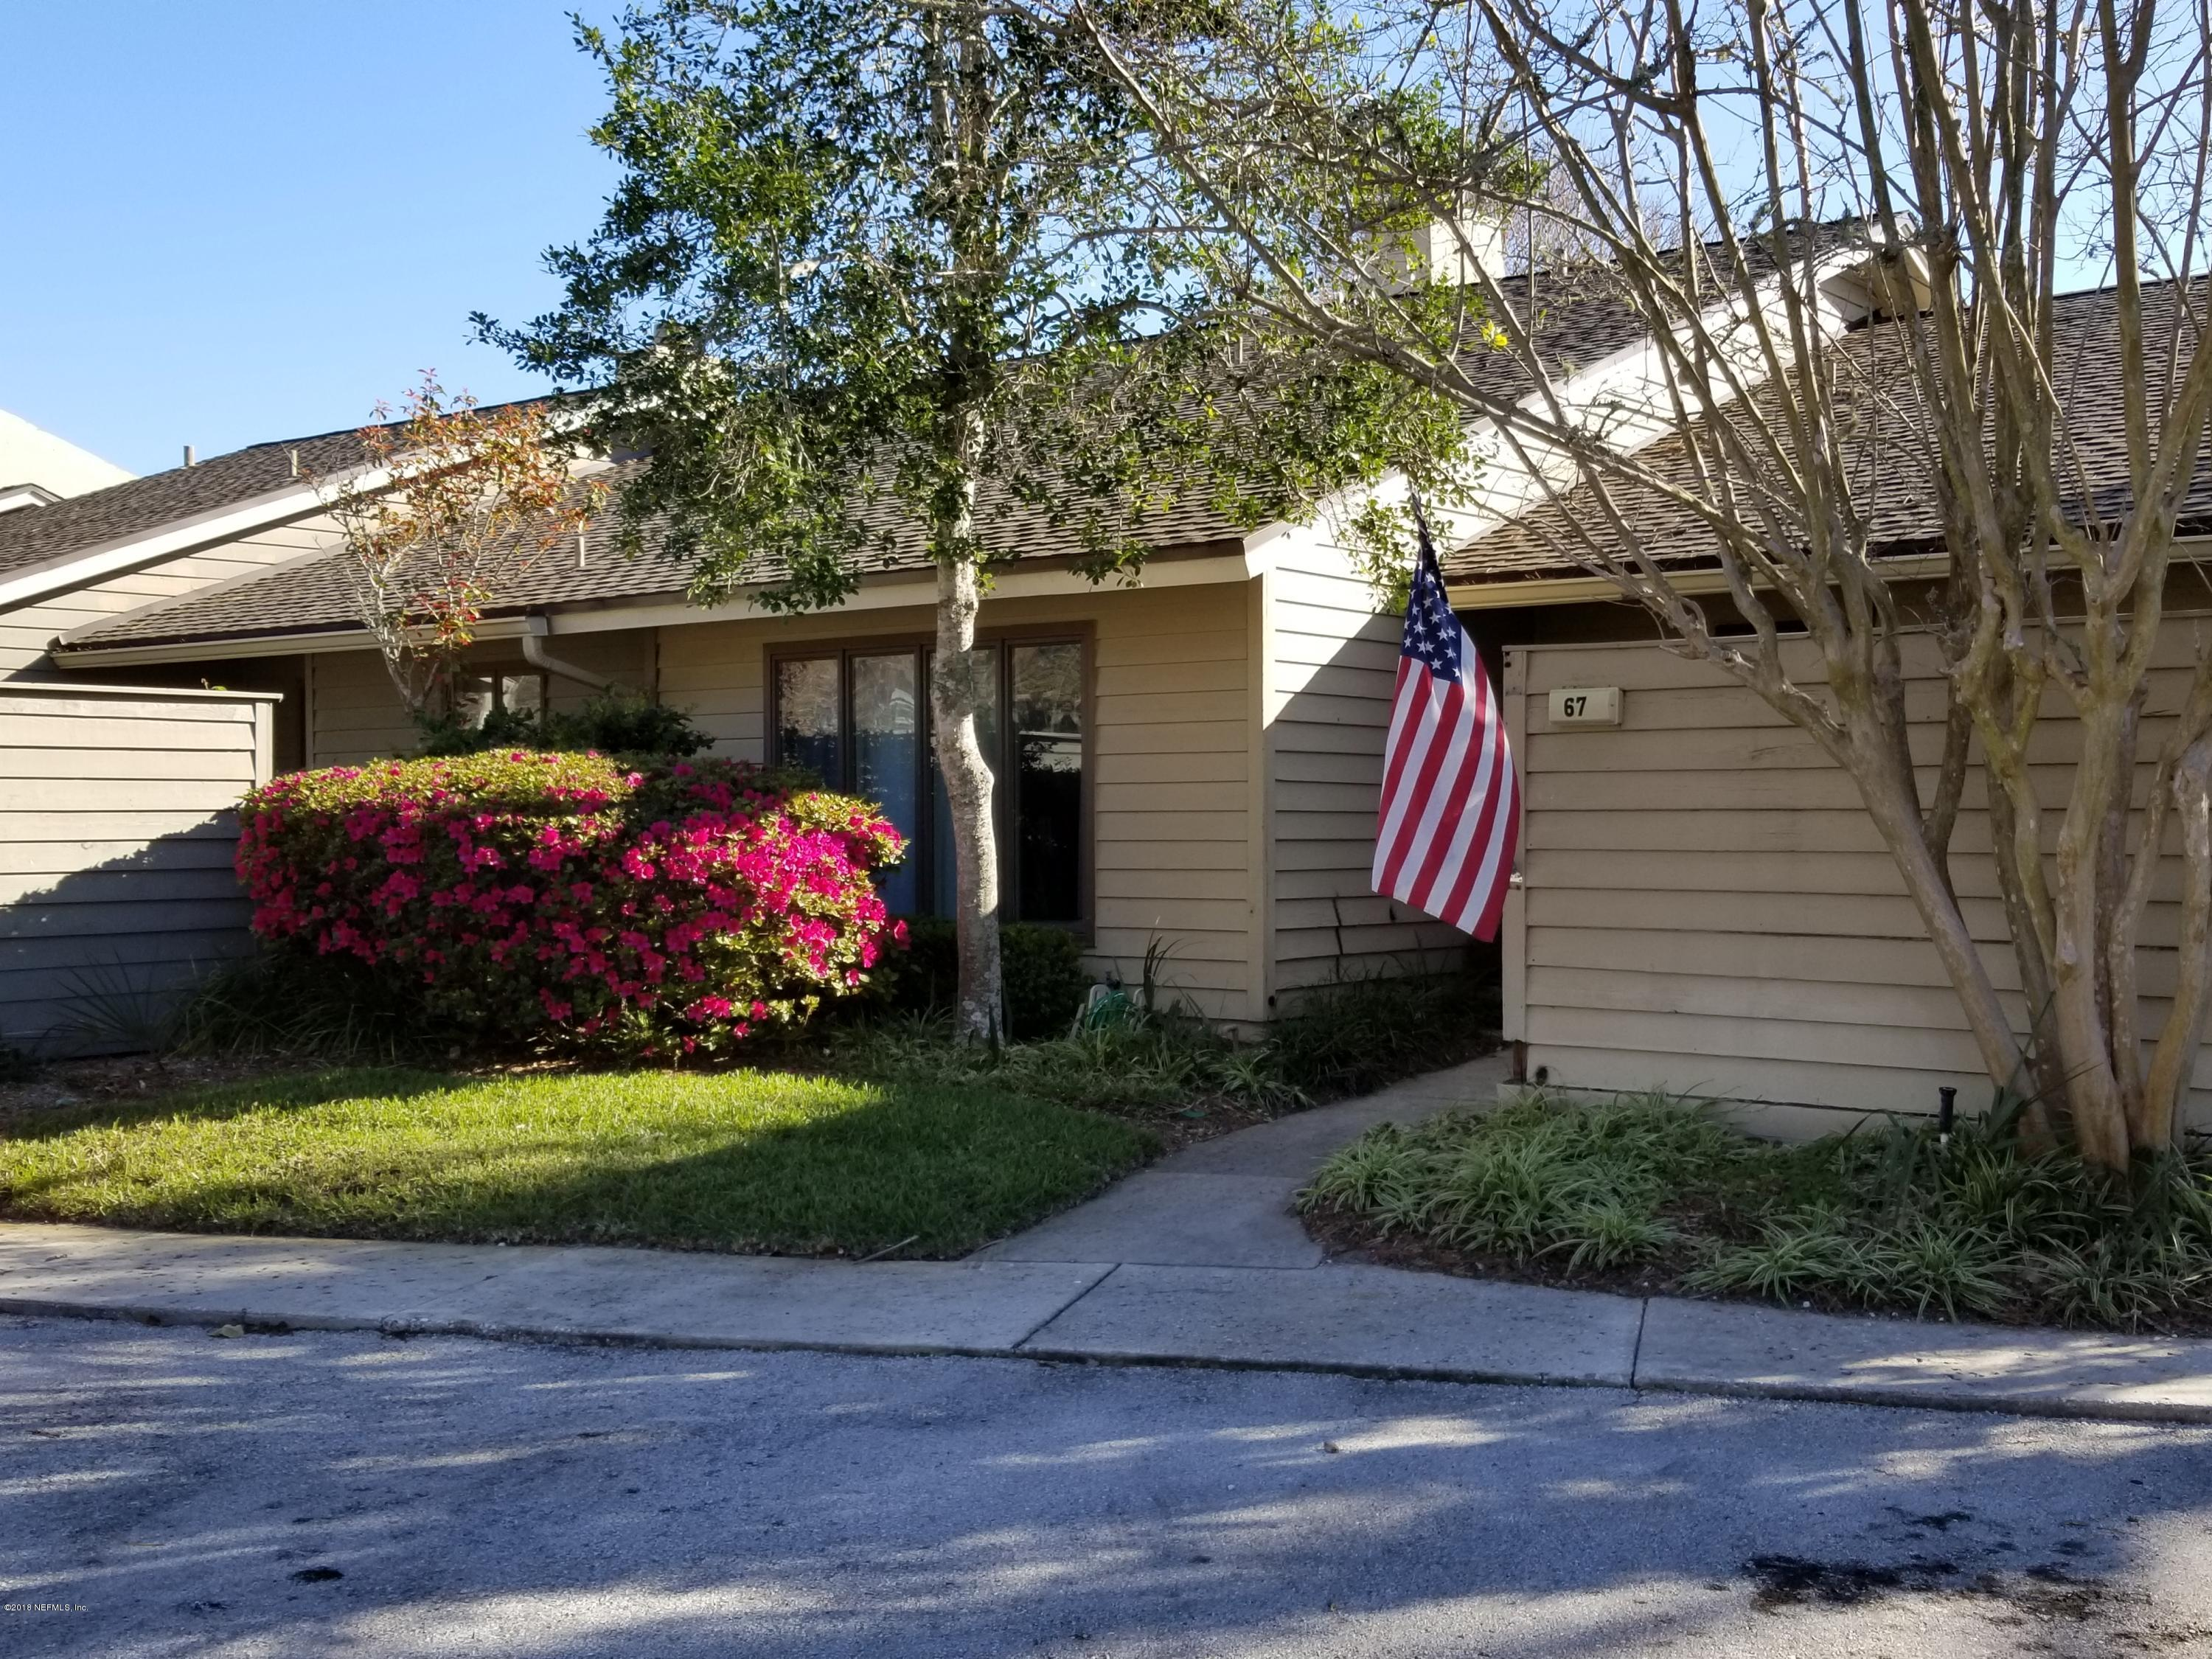 67 FISHERMANS COVE, PONTE VEDRA BEACH, FLORIDA 32082, 2 Bedrooms Bedrooms, ,2 BathroomsBathrooms,Residential - condos/townhomes,For sale,FISHERMANS COVE,971682